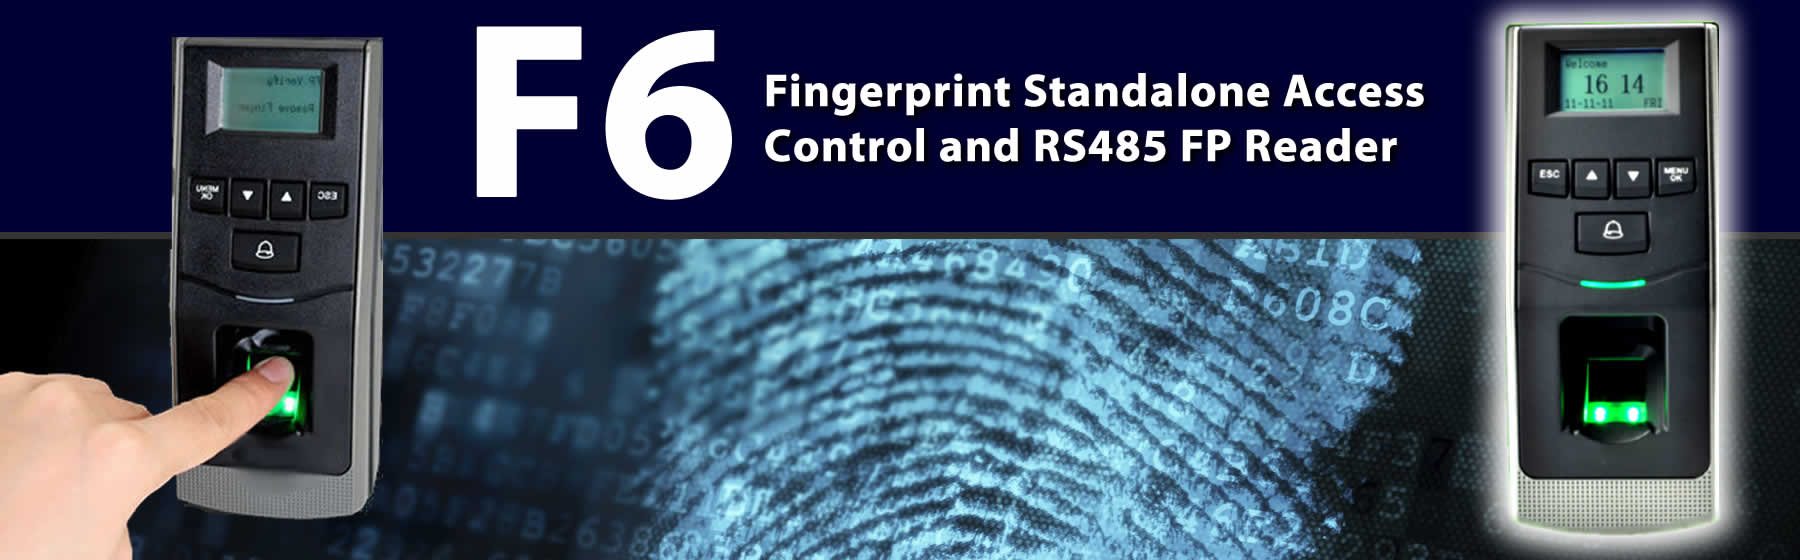 F6 biometric Fingerprint reader device